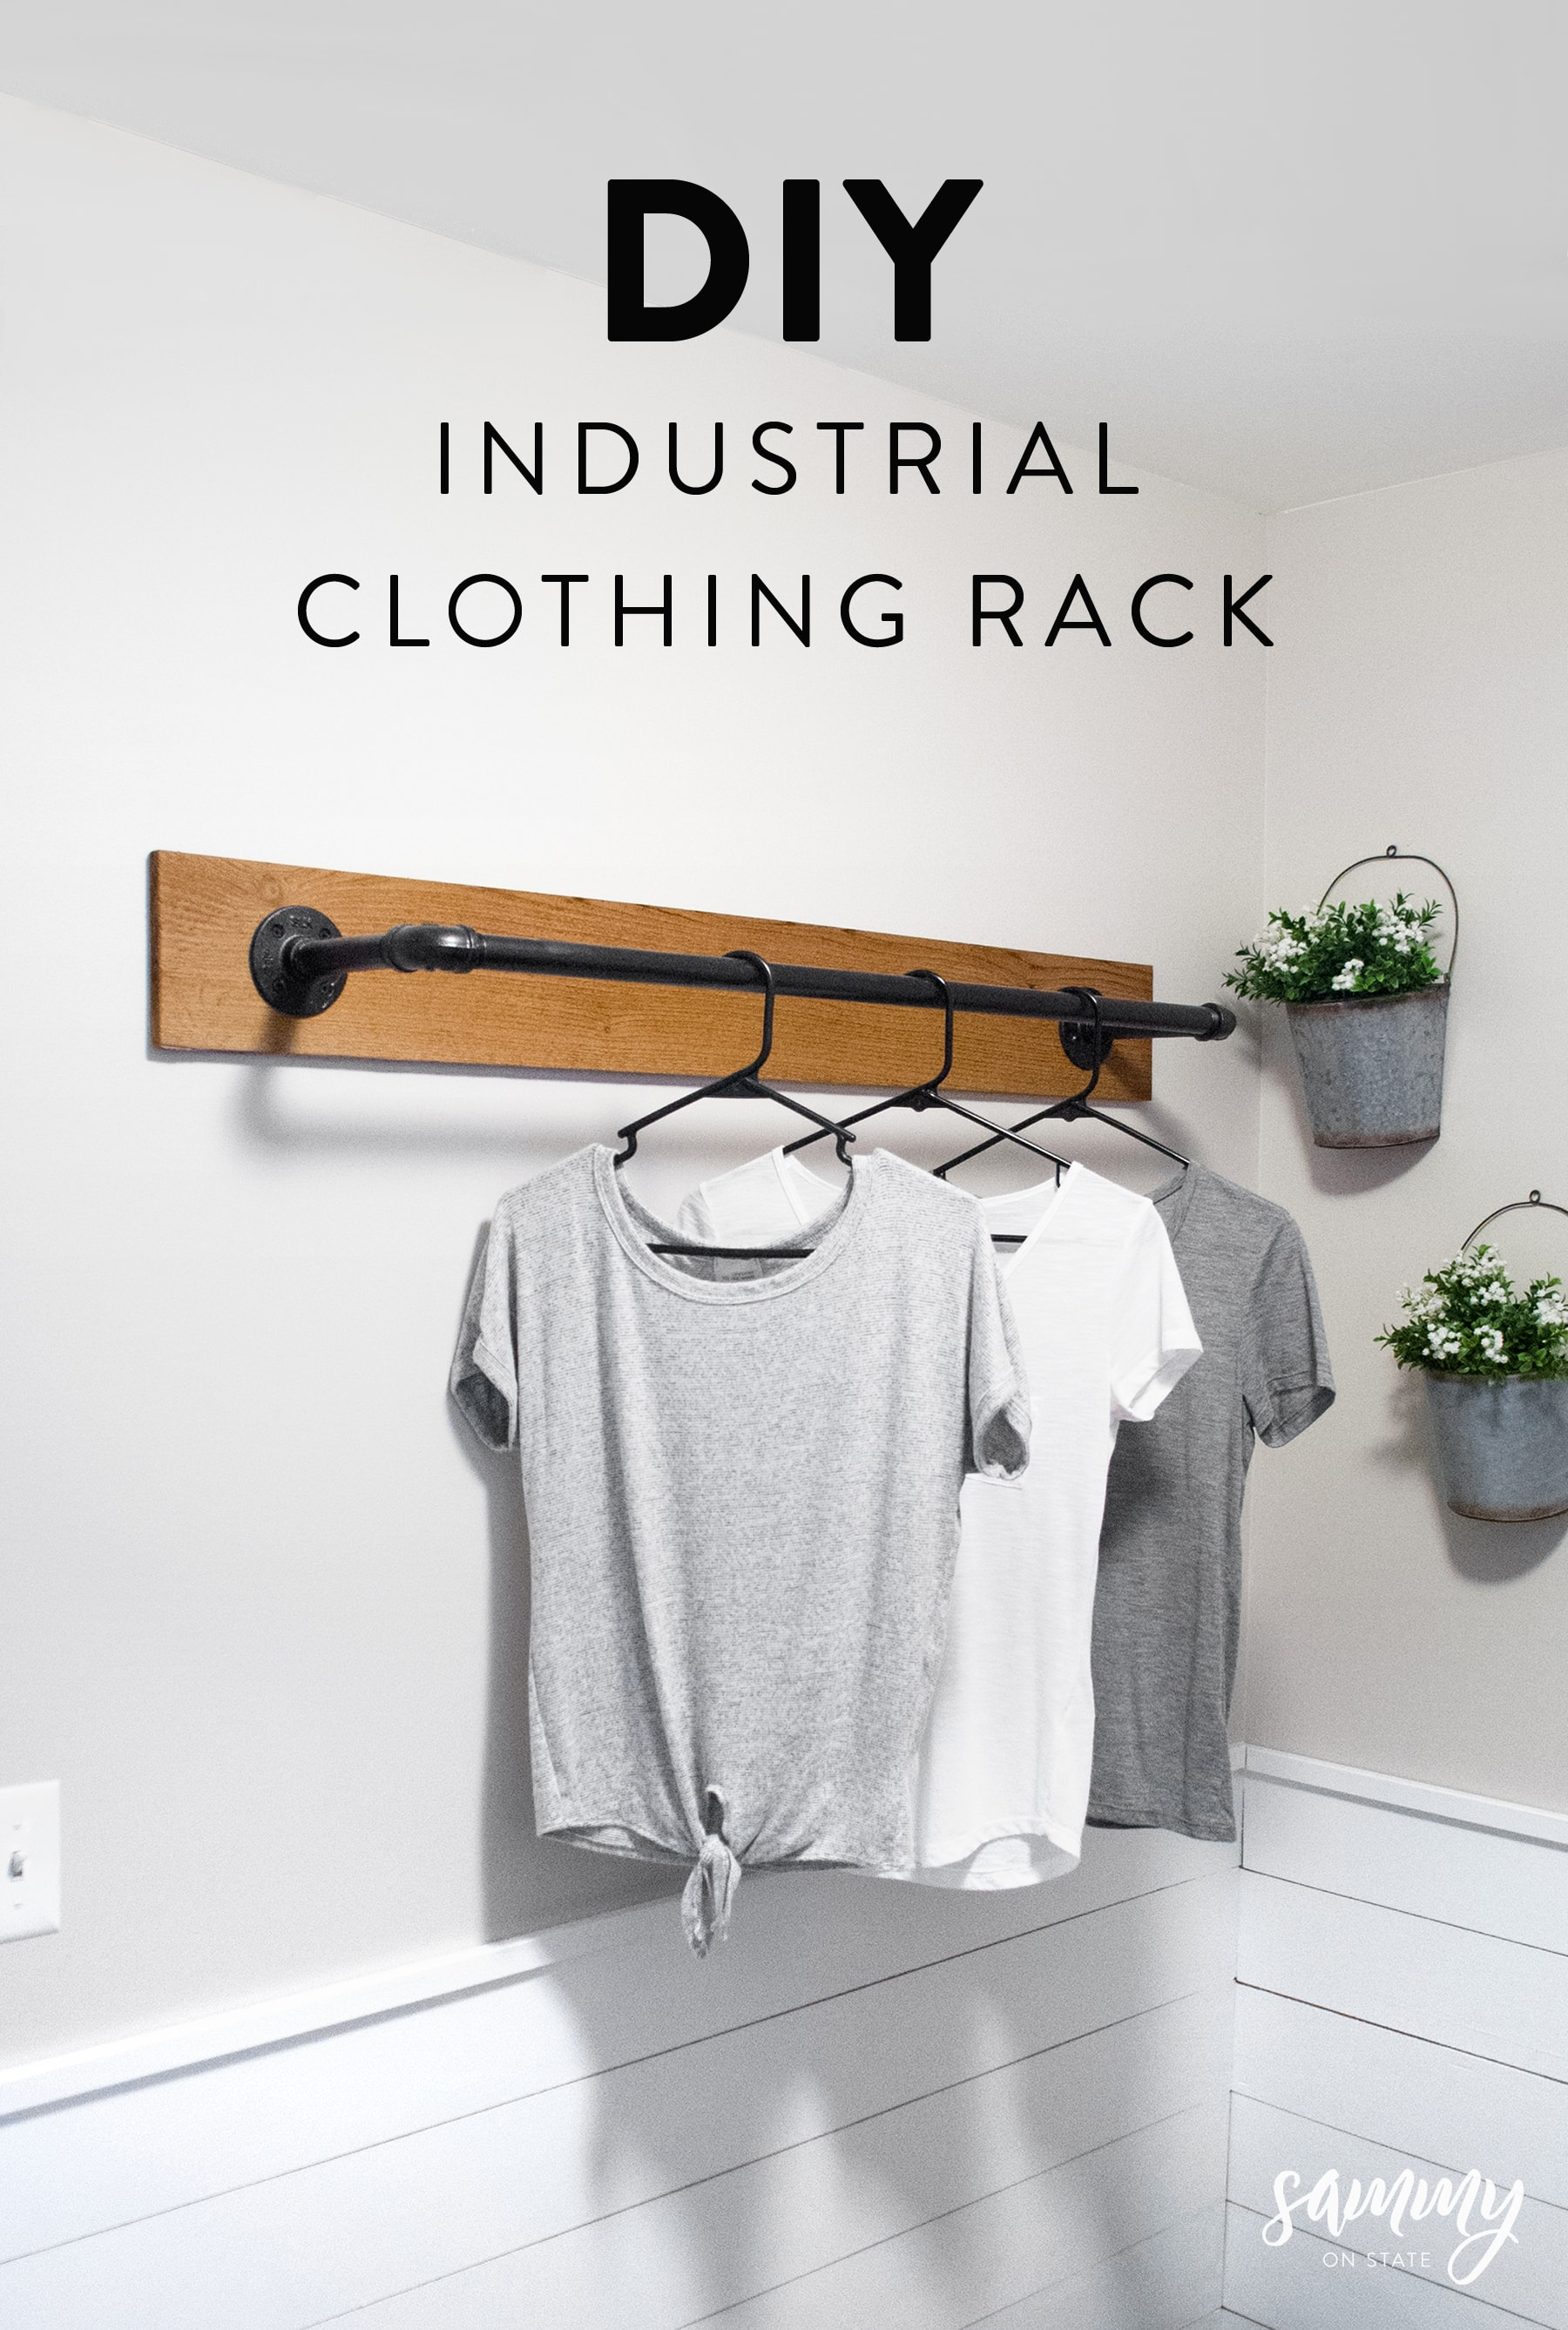 Industrial Clothing Rack Diy Wall Mounted Clothing Rack Sammy On State